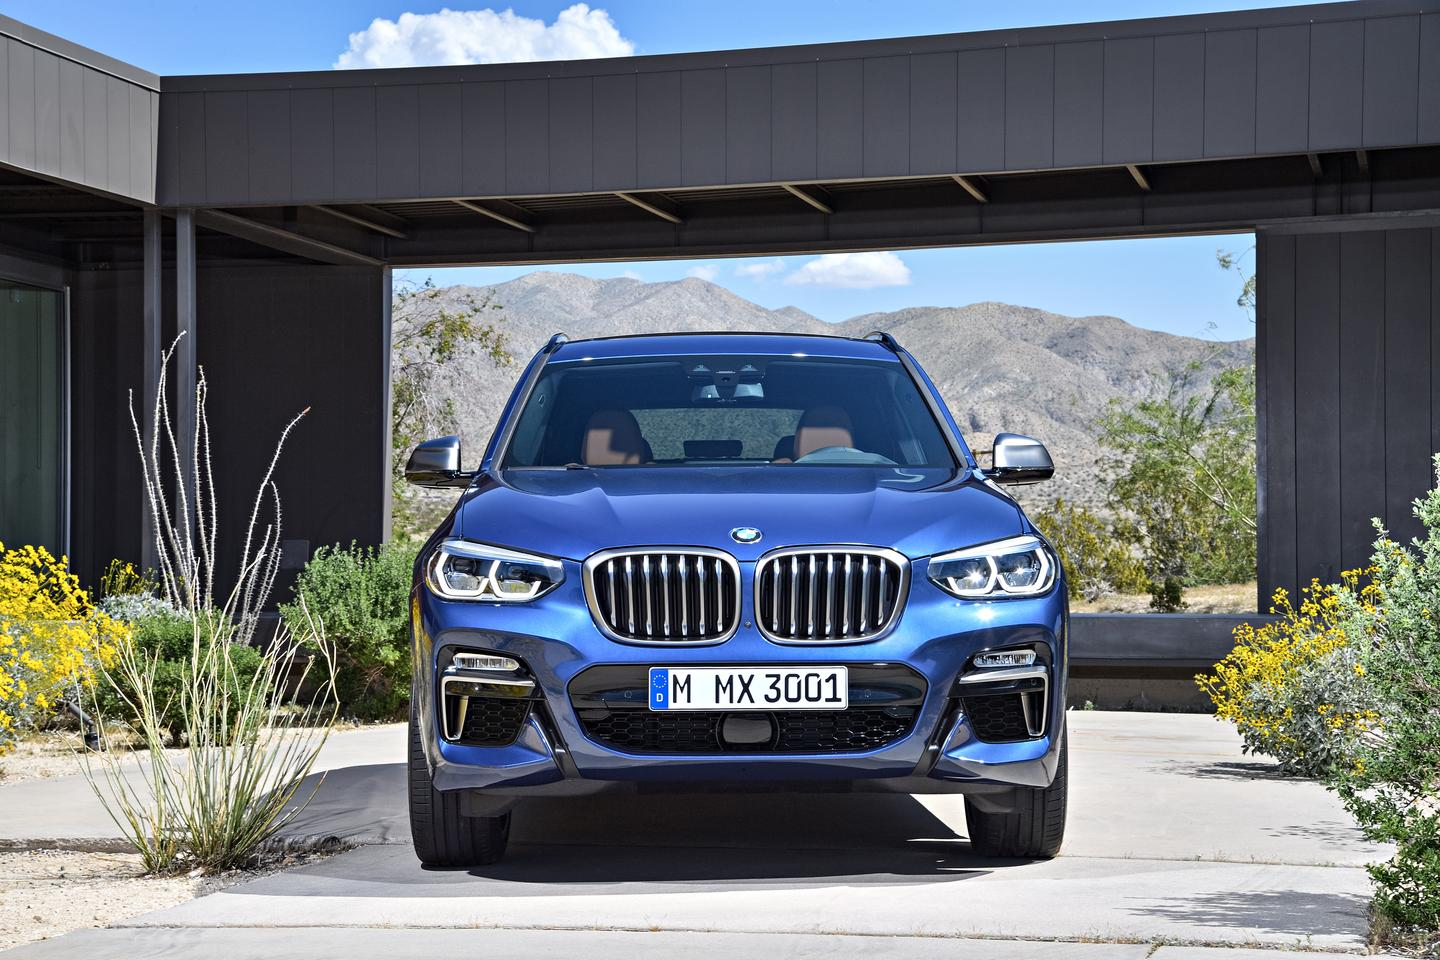 BMW has totally reworked the X3 SUV for its third generation